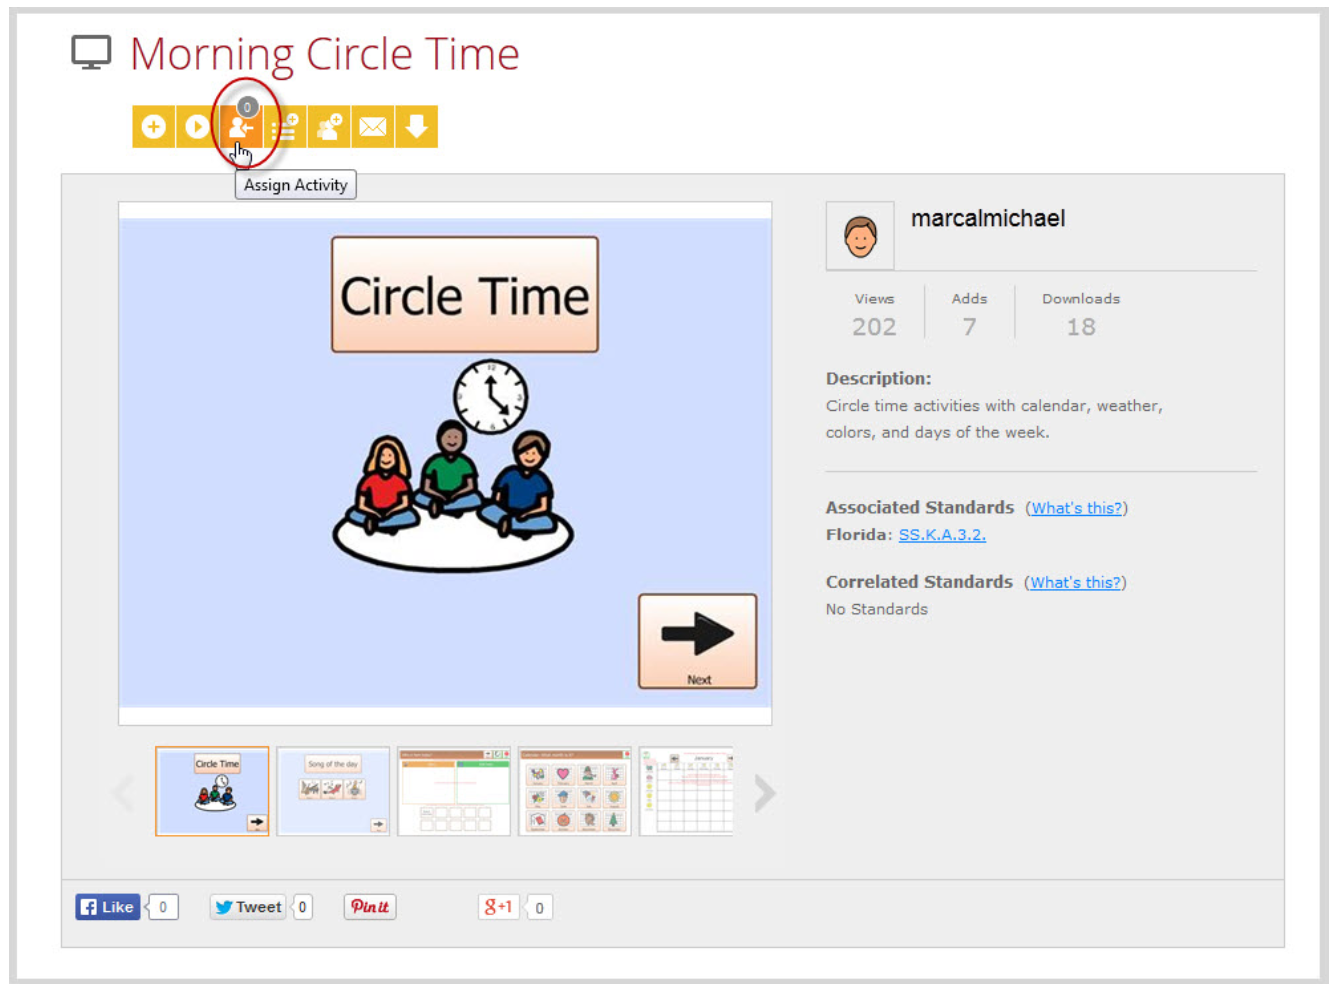 Morning Circle Time